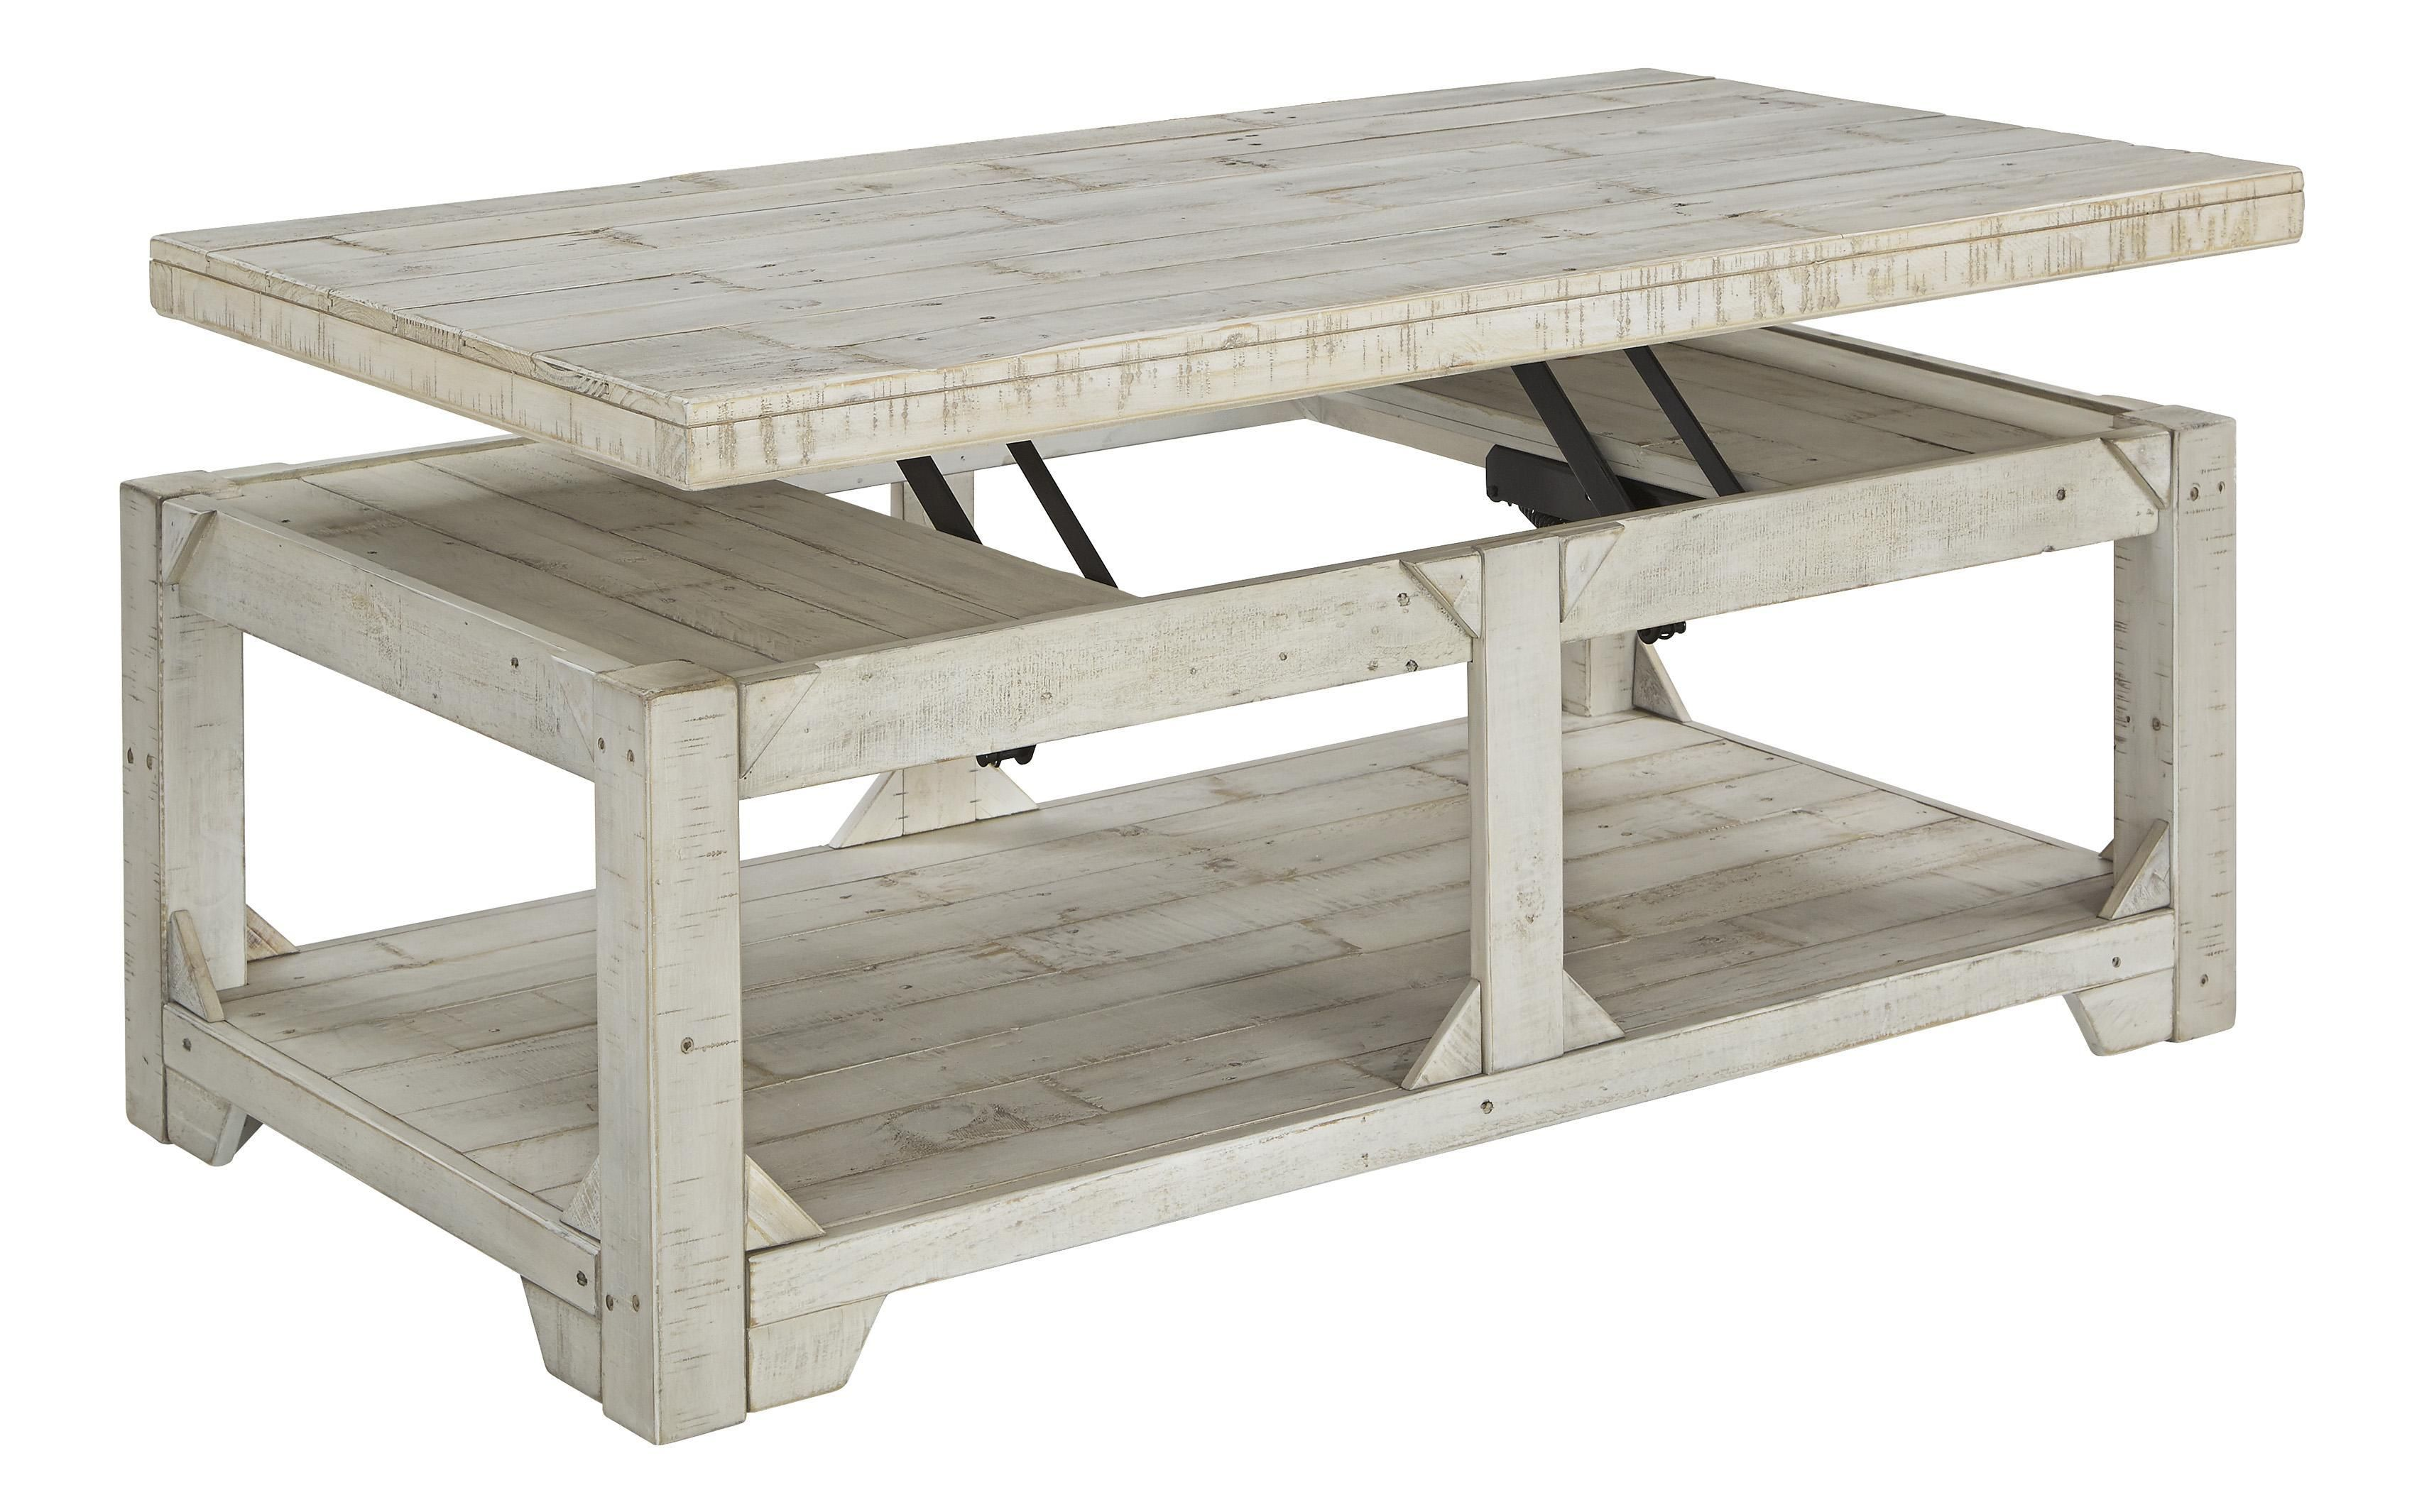 Farmhouse Wooden Lift Top Cocktail Table With Open Bottom Shelf In White Bm210780 Coffee Table Whitewash Coffee Table Lift Top Coffee Table [ 2130 x 3397 Pixel ]